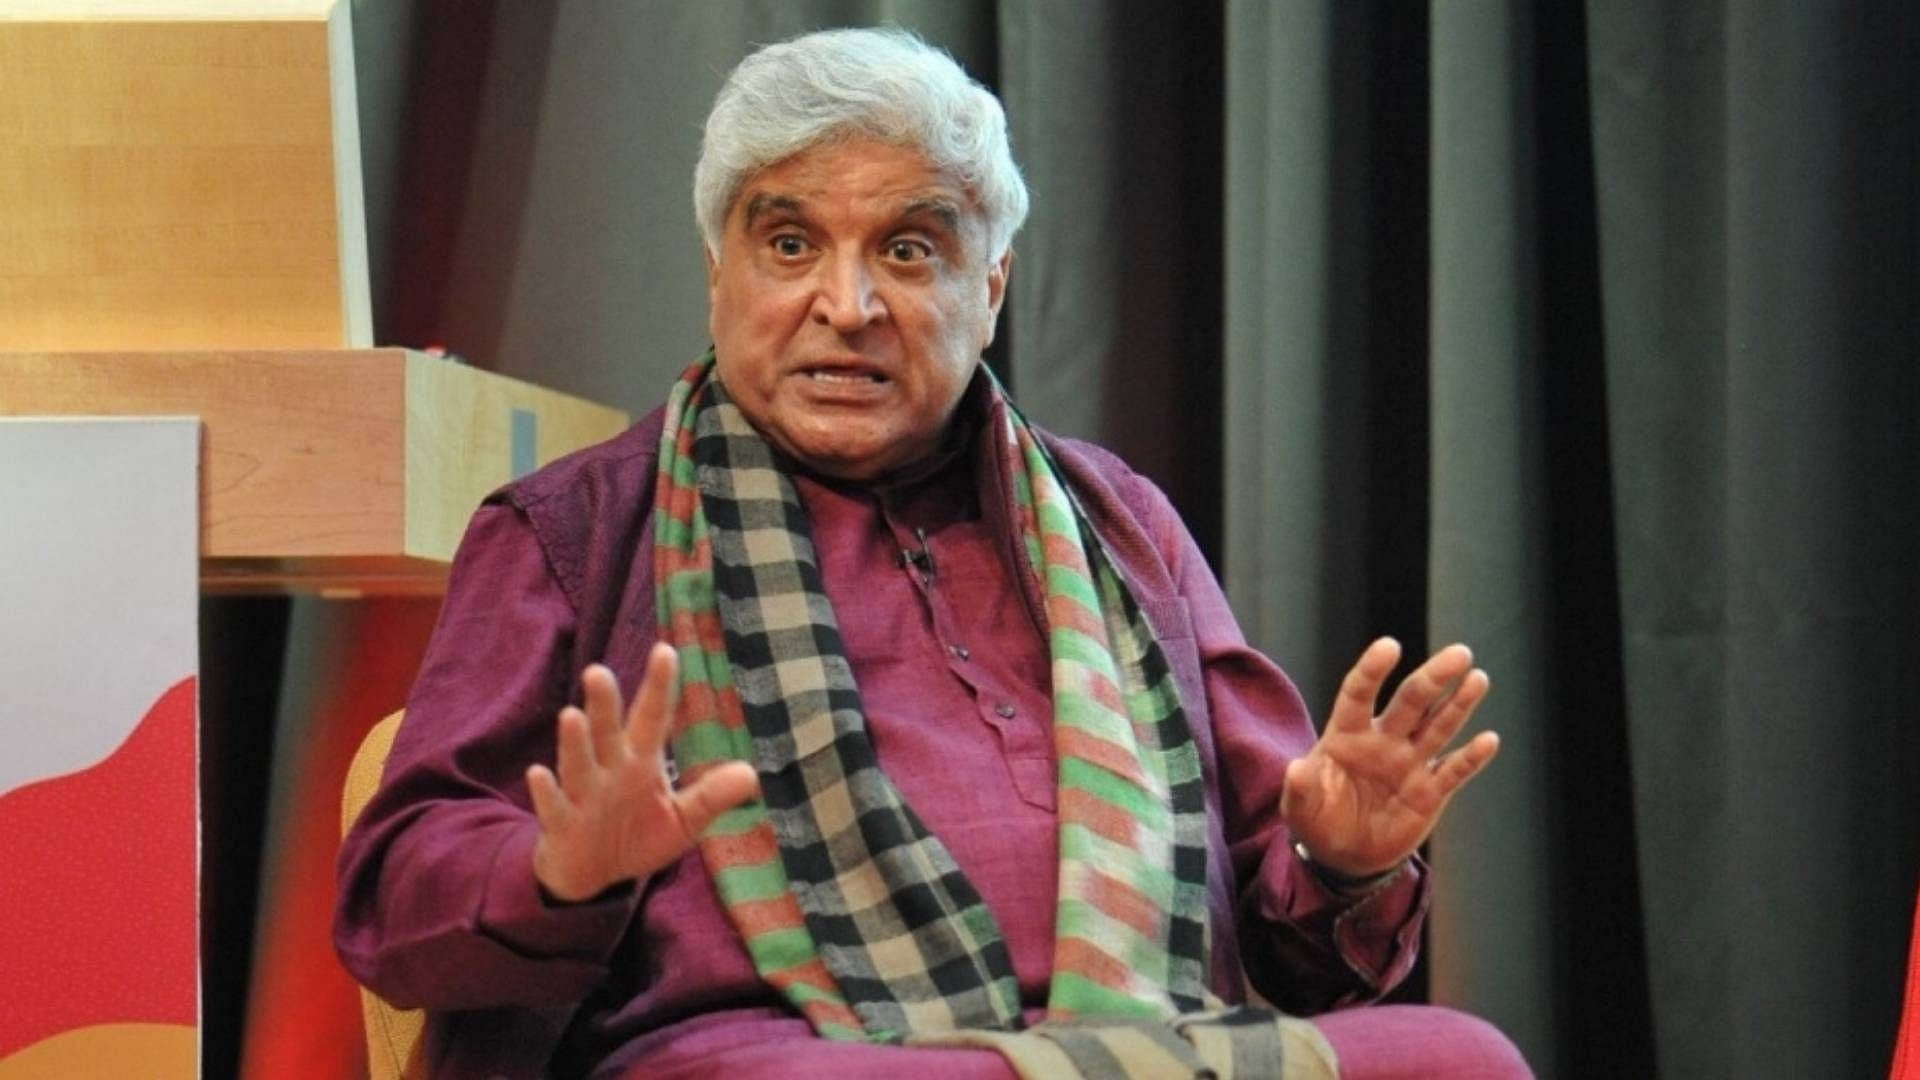 Mumbai based lawyer files criminal complaint filed against Javed Akhtar for his alleged remark against RSS